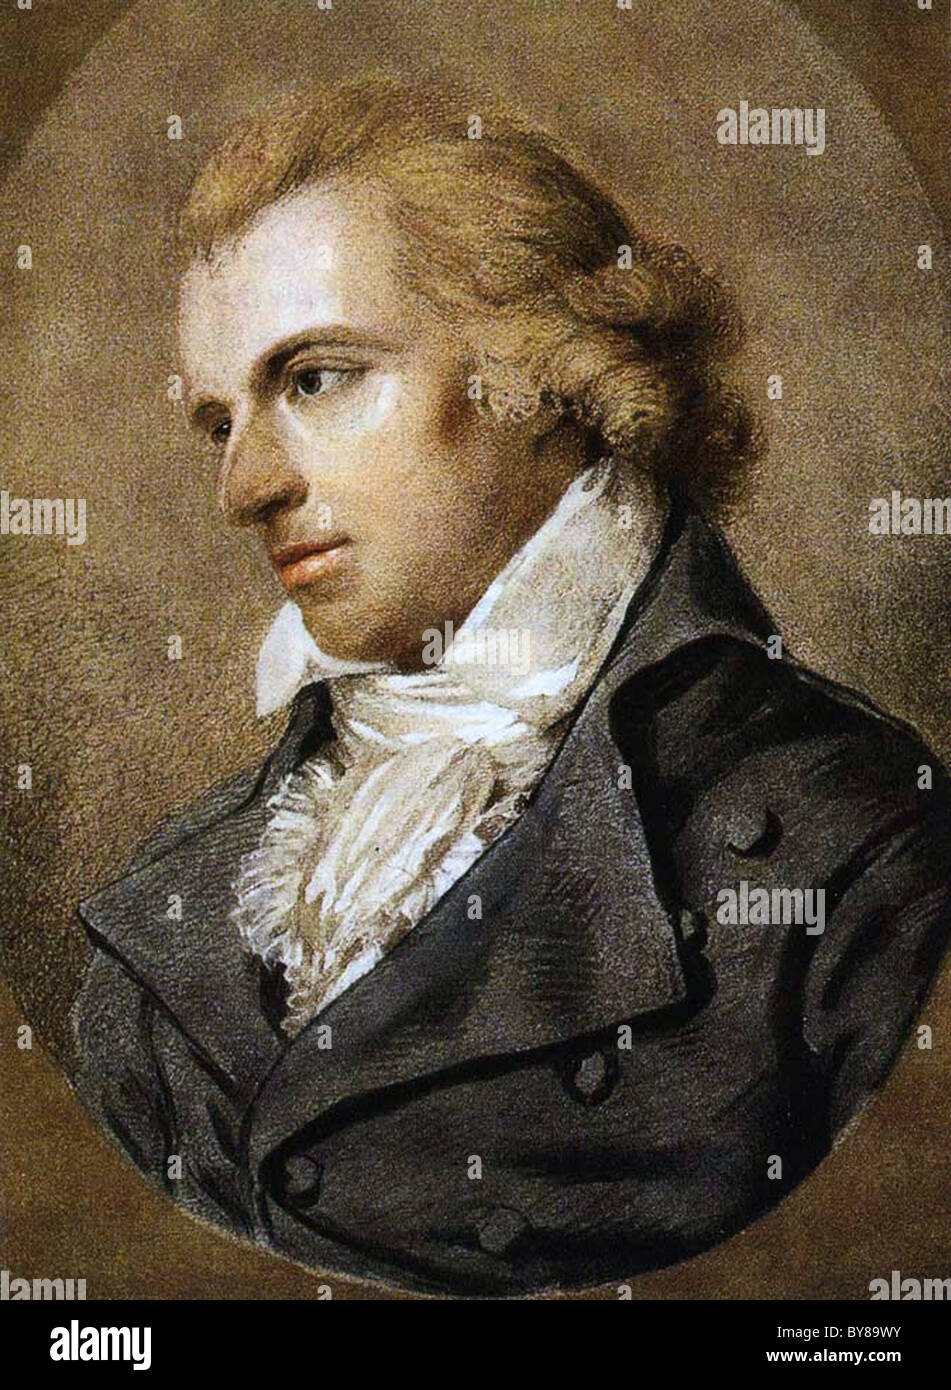 FRIEDRICH SCHILLER (1759-1805) German poet and historian chalk wash drawing by Ludovika Simanowiz about 1793 - Stock Image